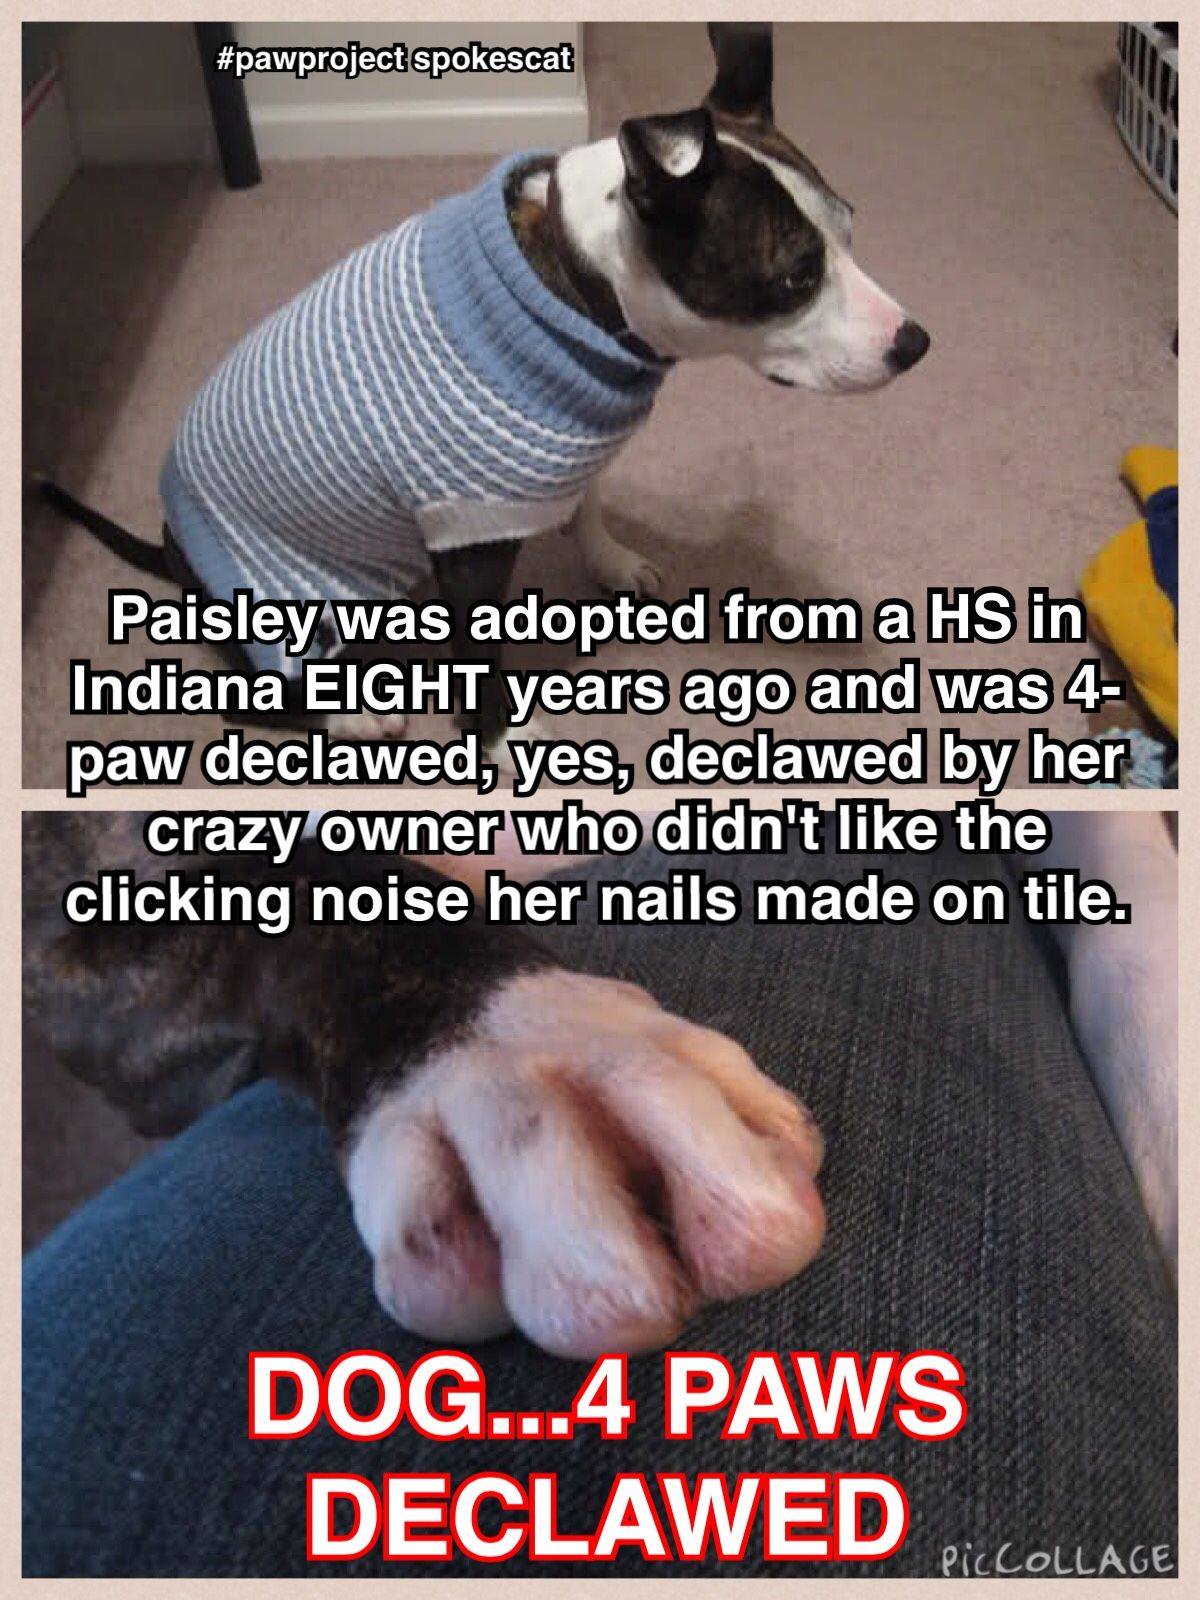 Watch a dog getting #declawed without meds by a #veterinarian. https://www.facebook.com/cassandracatwantsherclawsback/videos/vb.316121541928633/488384818035637/?type=2&theater  #AAFP #CatVets #AVMAvets #AVMA #AVMATellTheTruth #AAHA #AAHAHealthyPets #ACVBbehavior #StopDeclawingCats #BoycottVetsWhoDeclaw #StopLegalAnimalCruelty #DeclawedCatsAreInConstantPain #VetEconFact #NYSVMS #GreedOverCompassion #AVMAhatesPETS #Declawing